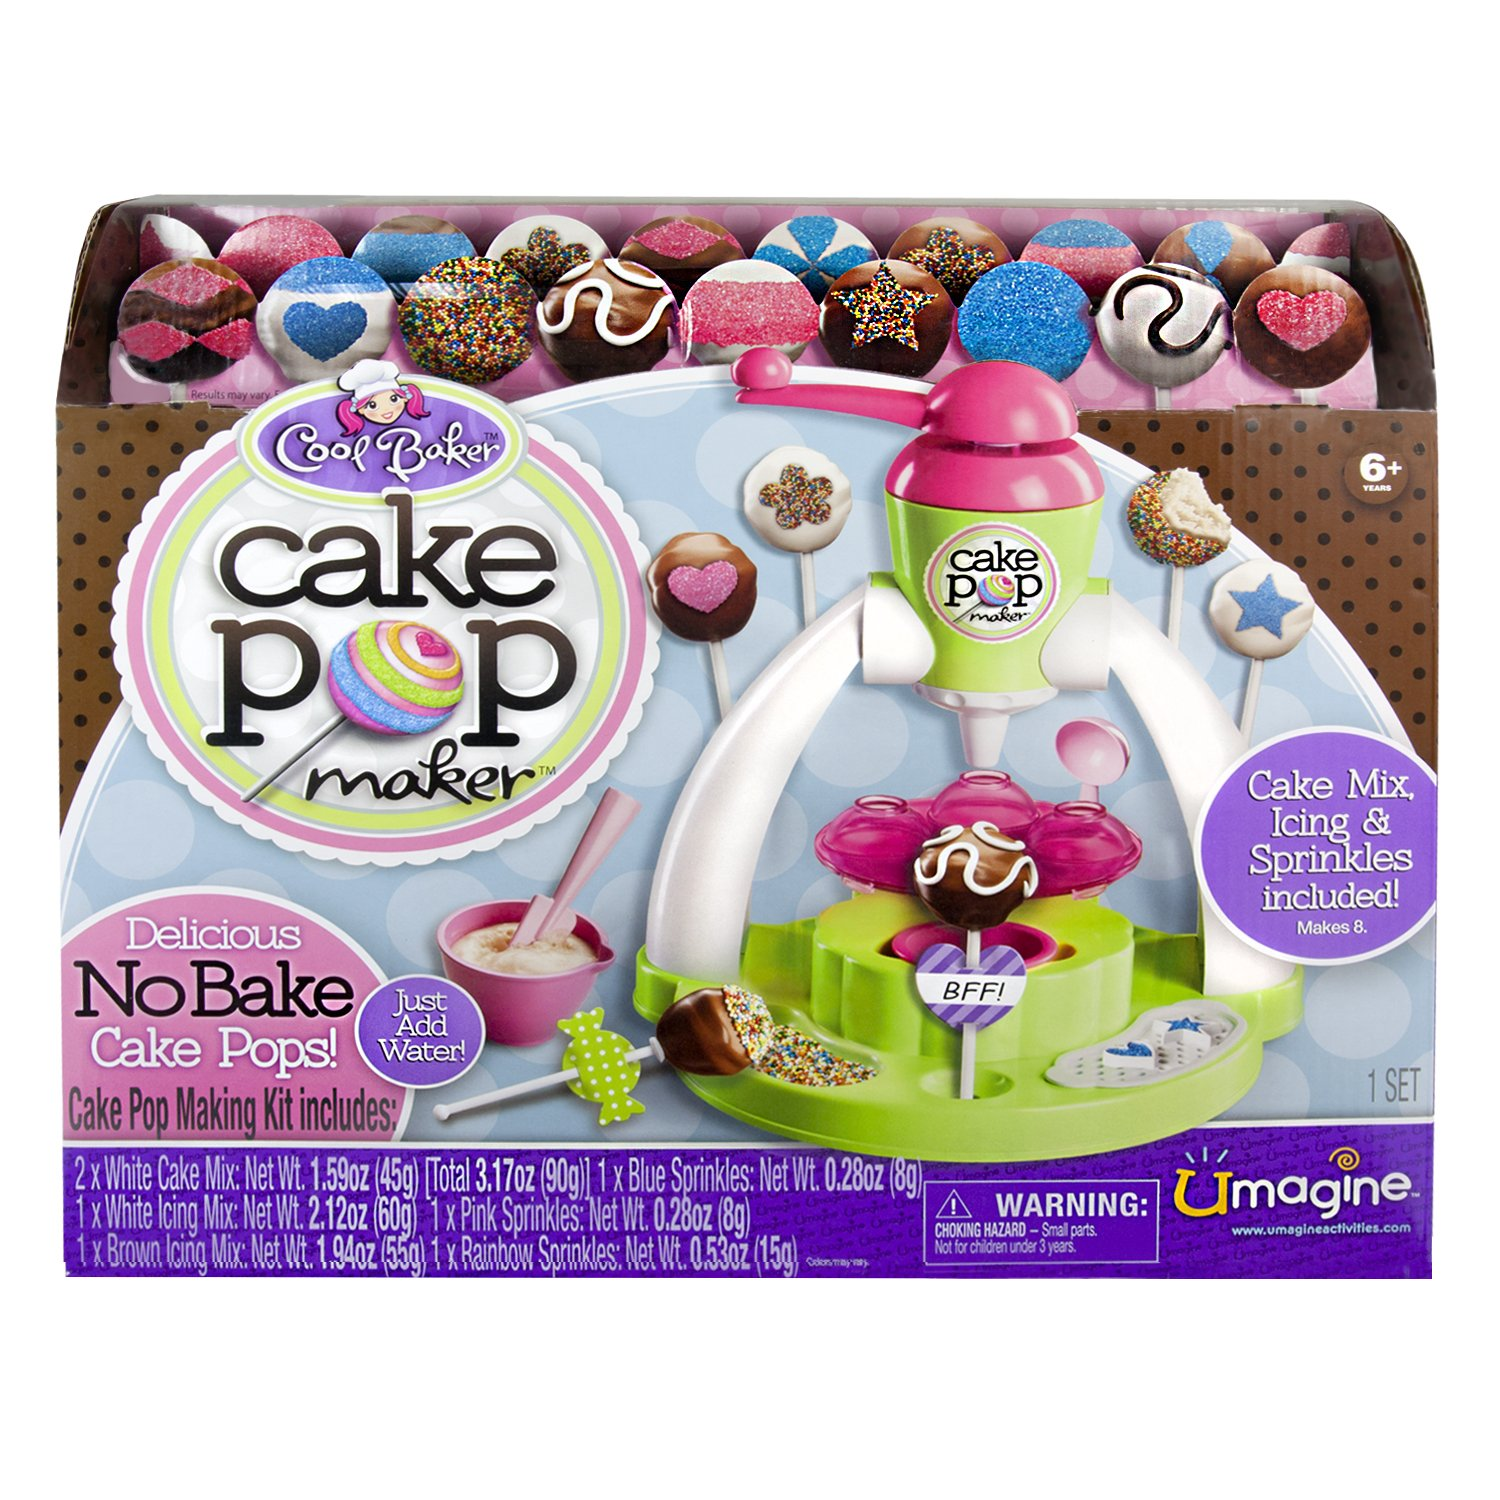 Cool Baker Cake Pop Maker by Umagine (Image #2)